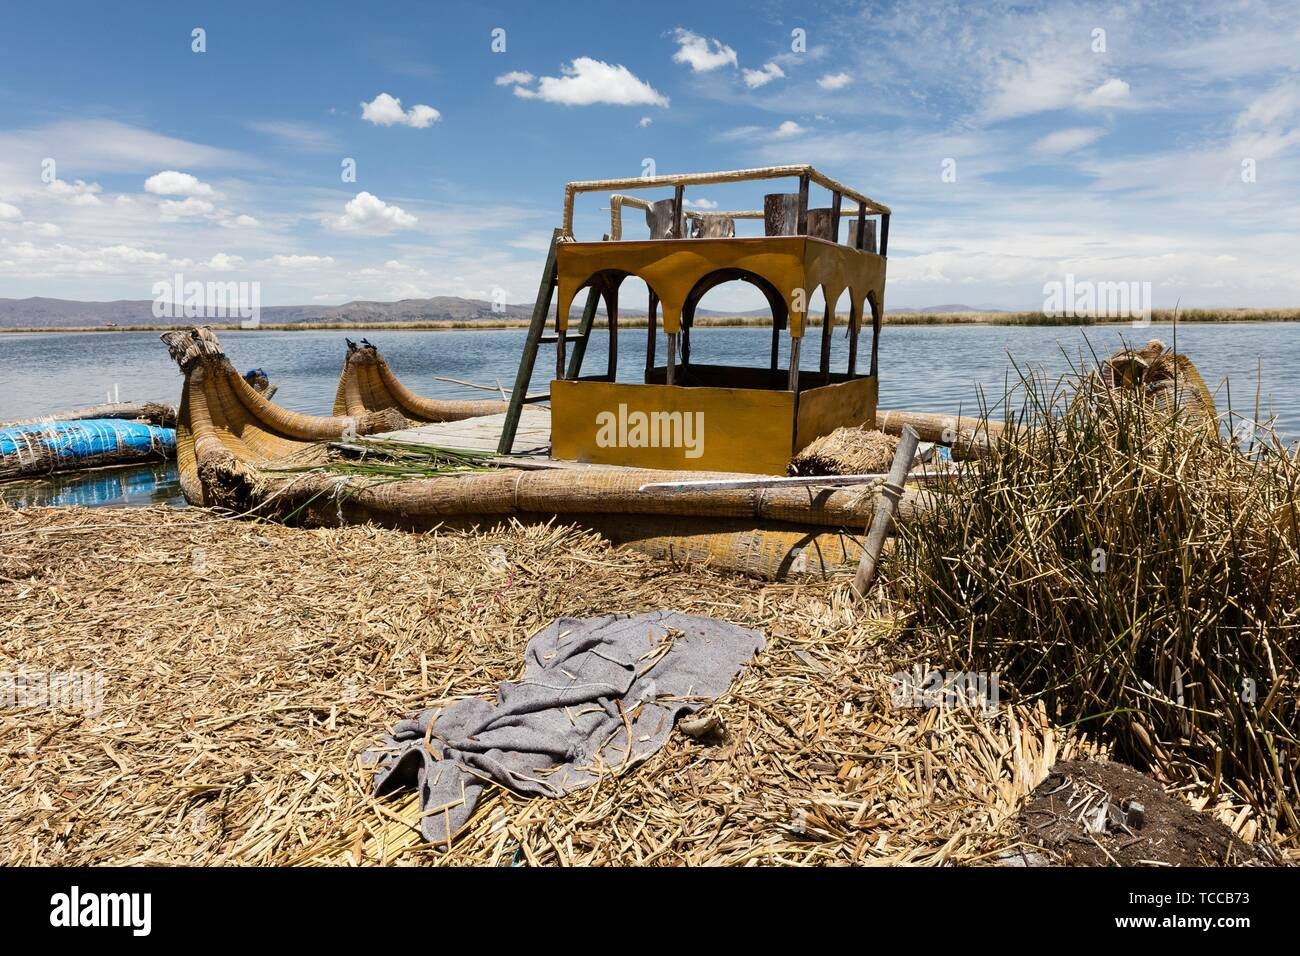 Totora boat on the Titicaca lake near Puno, Peru. - Stock Image